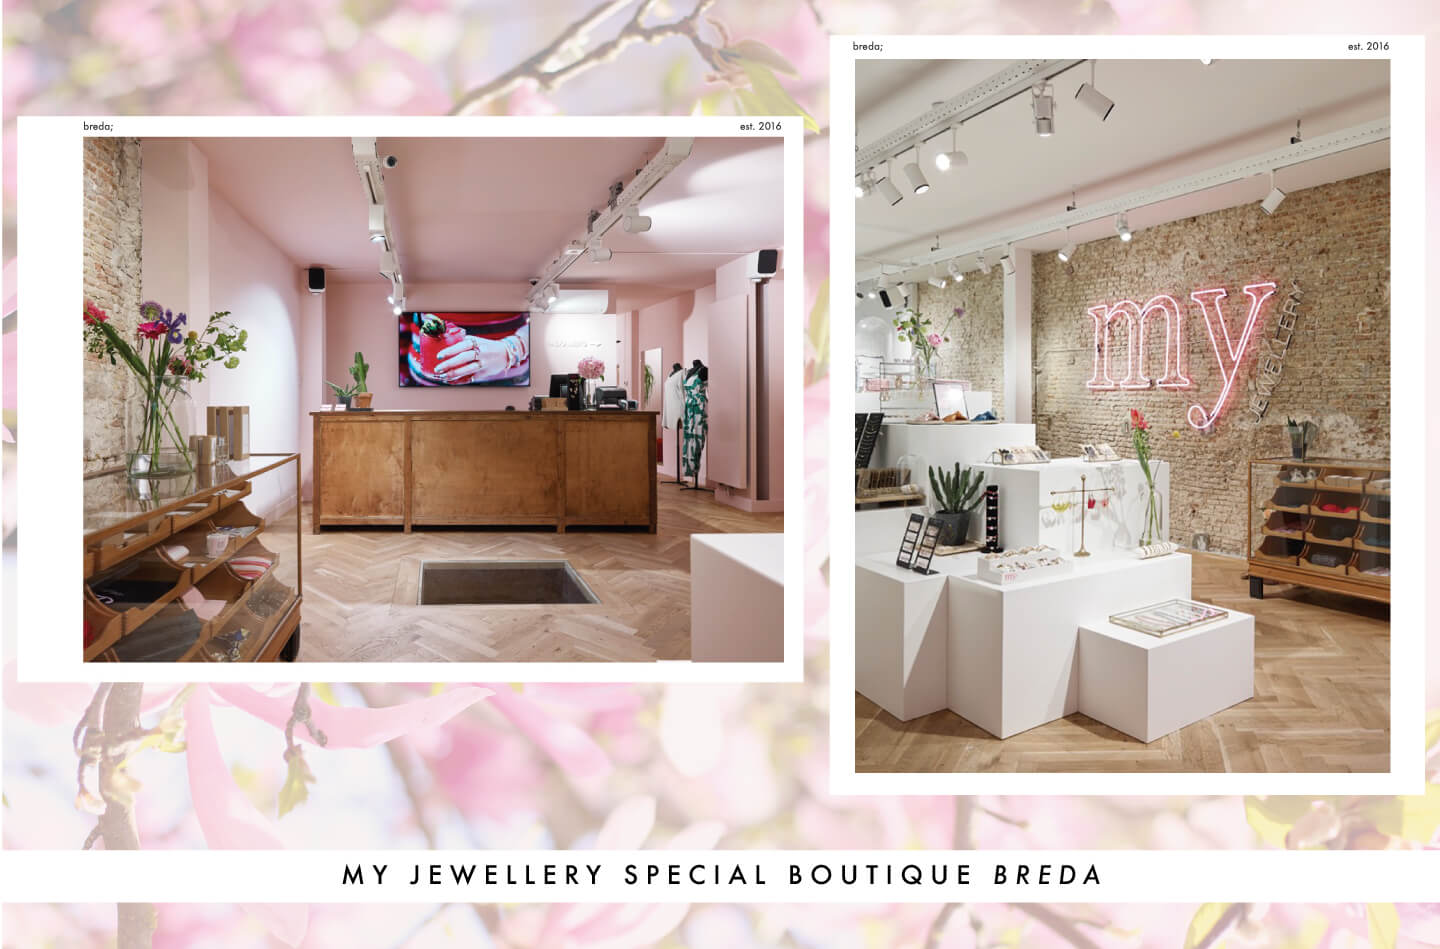 My Jewellery boutique Breda